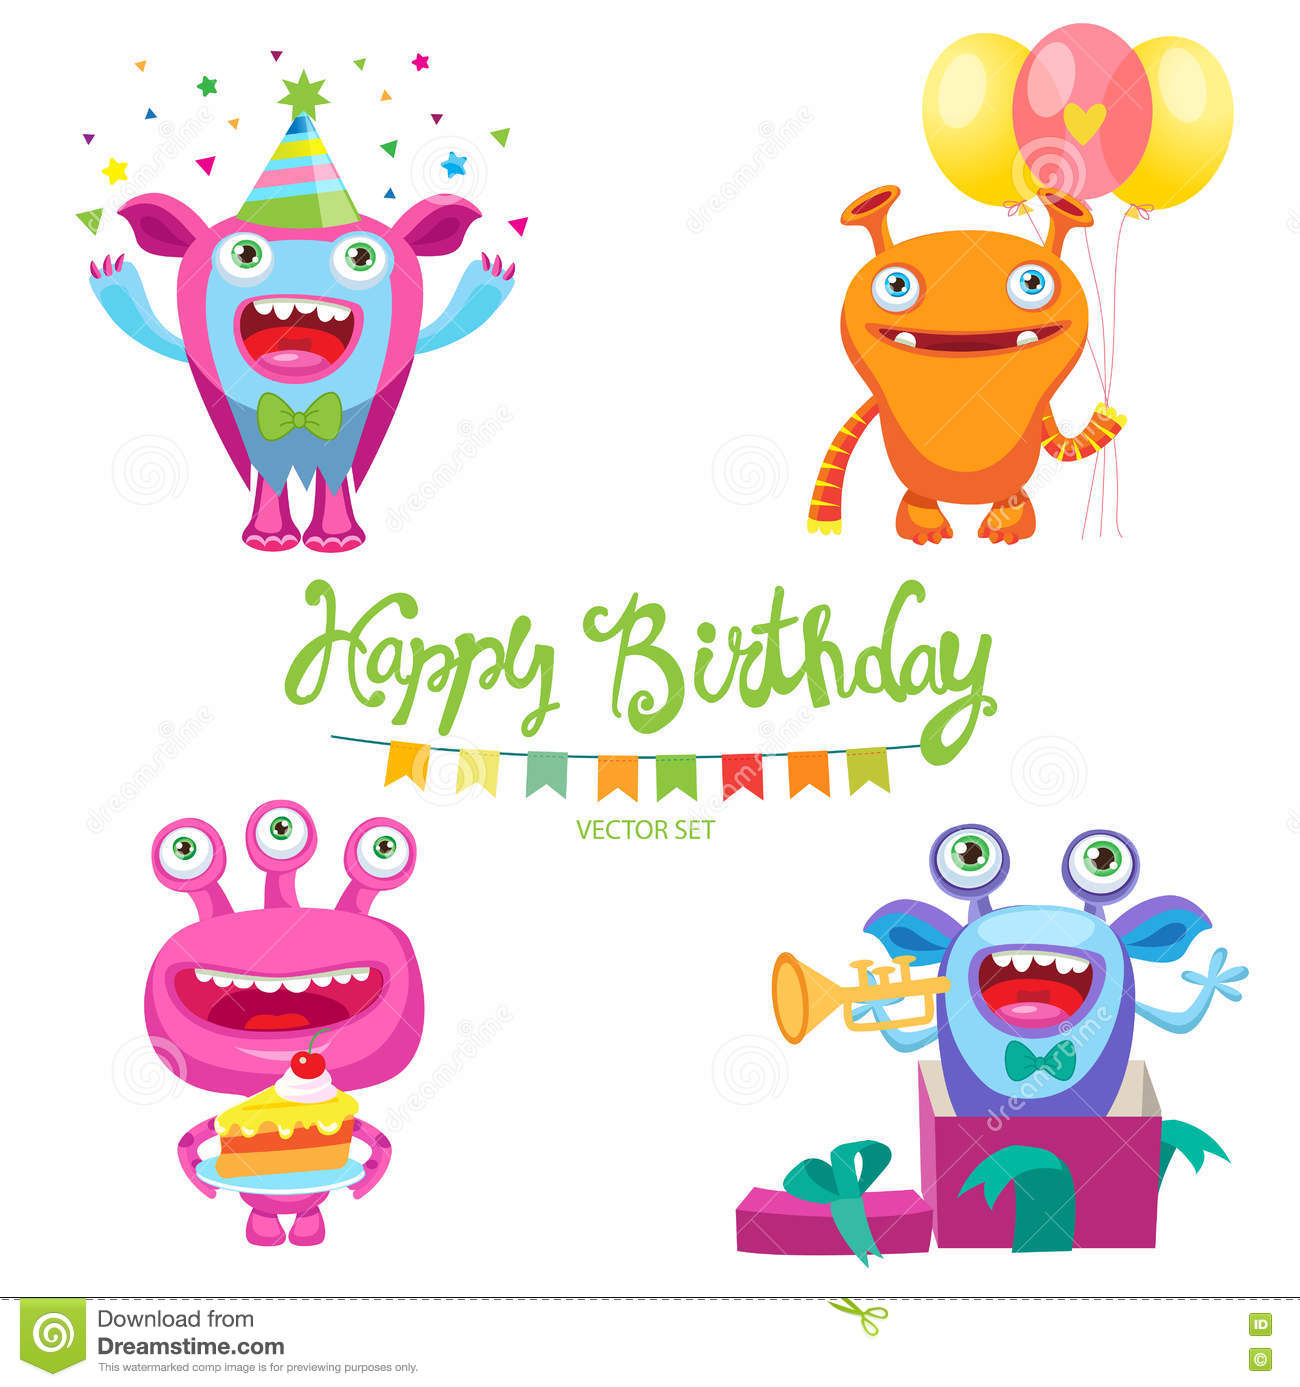 Cute Monsters For Birthday Card Inside Me Aliens Parties Space